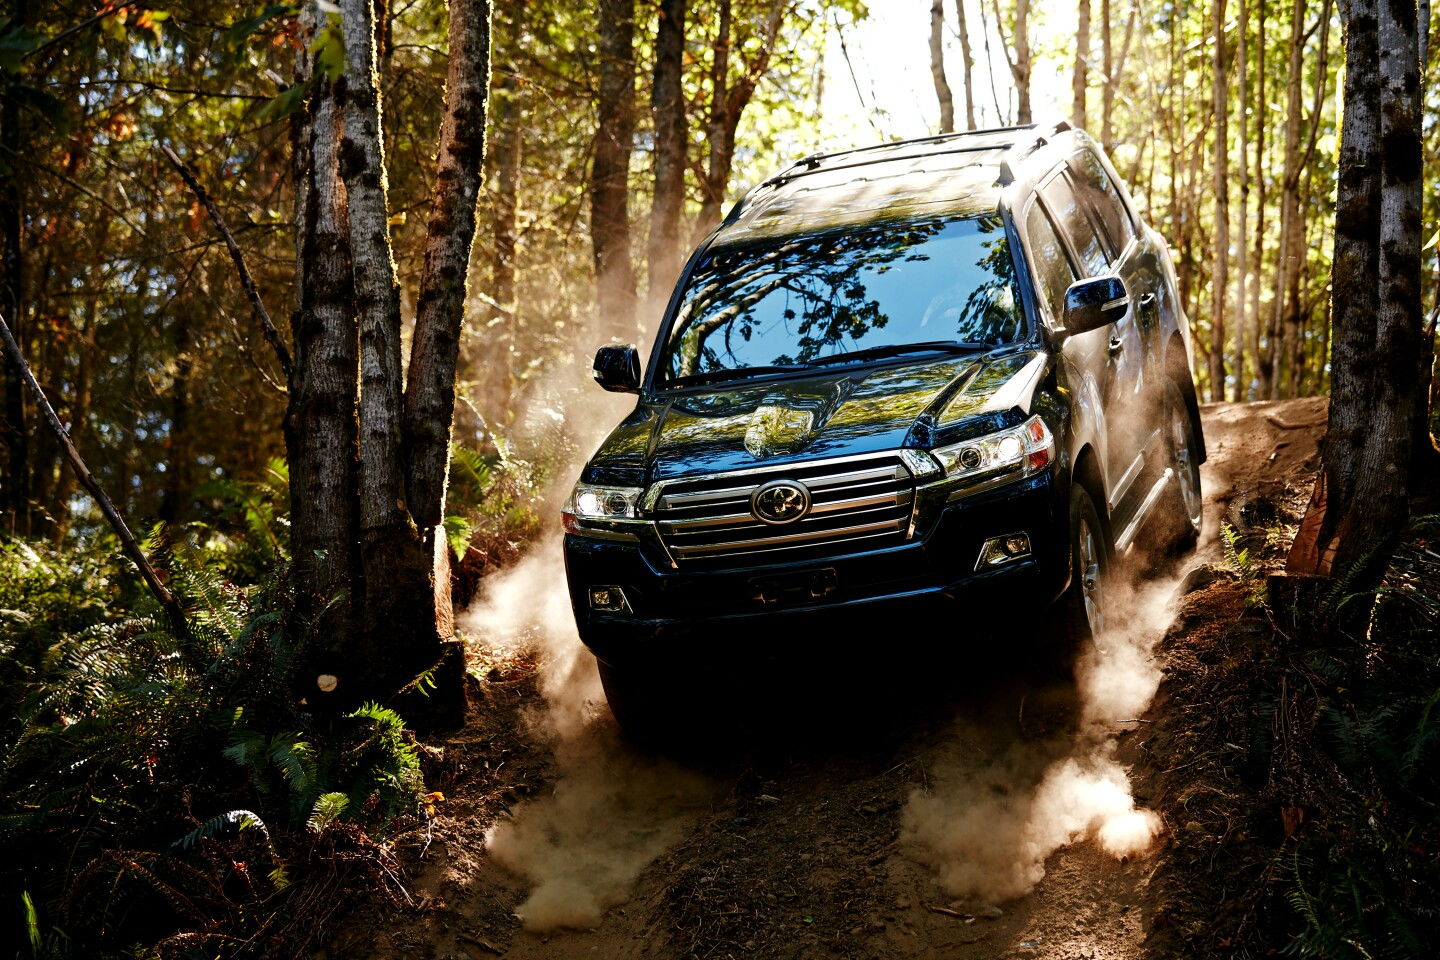 The 2020 Toyota Land Cruiser: All the comforts of home, and big as a house